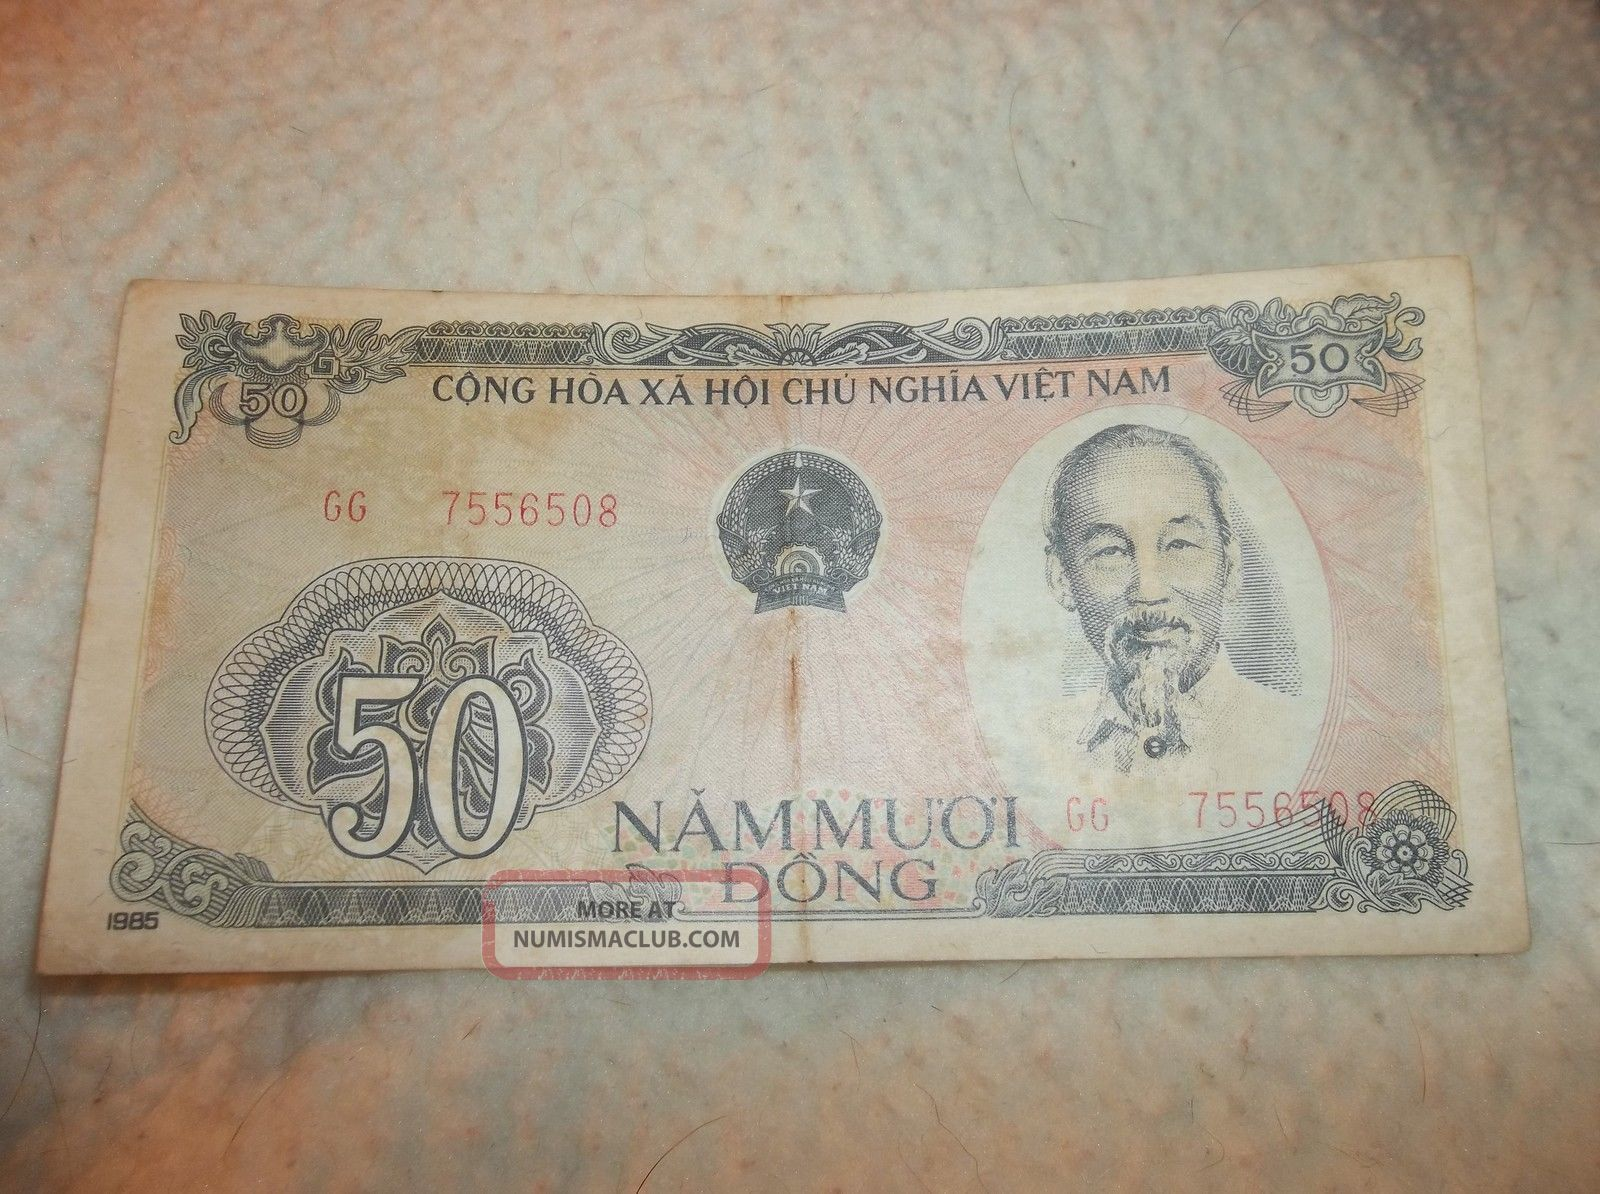 Vintage 1985 Banknote Cong Hoa X A Hoi Chu Nghia Viet Nam 50 Nam Muoi Dong Asia photo